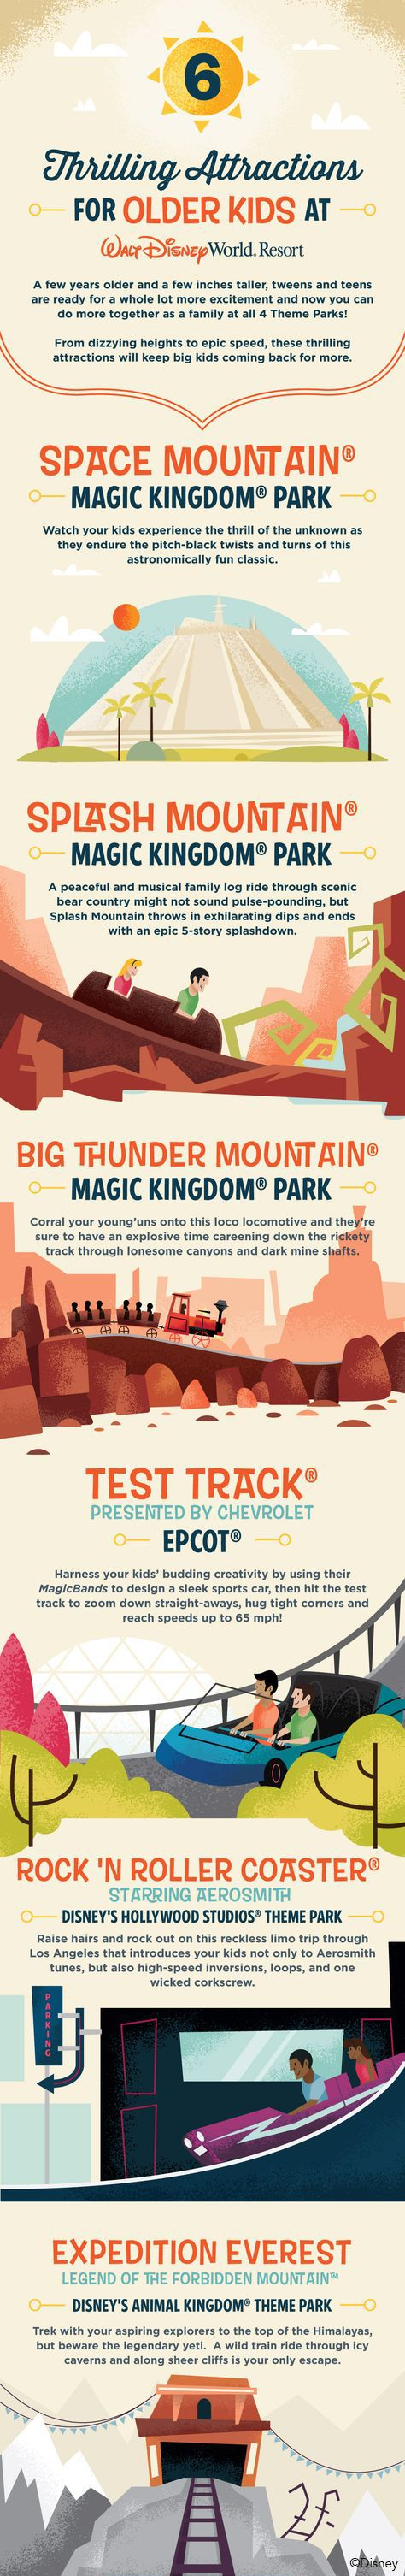 Your older kids will love these thrilling attractions on your Walt Disney World vacation! From Space Mountain to Test Track to Expedition Everest, there's something for every tween and teen!